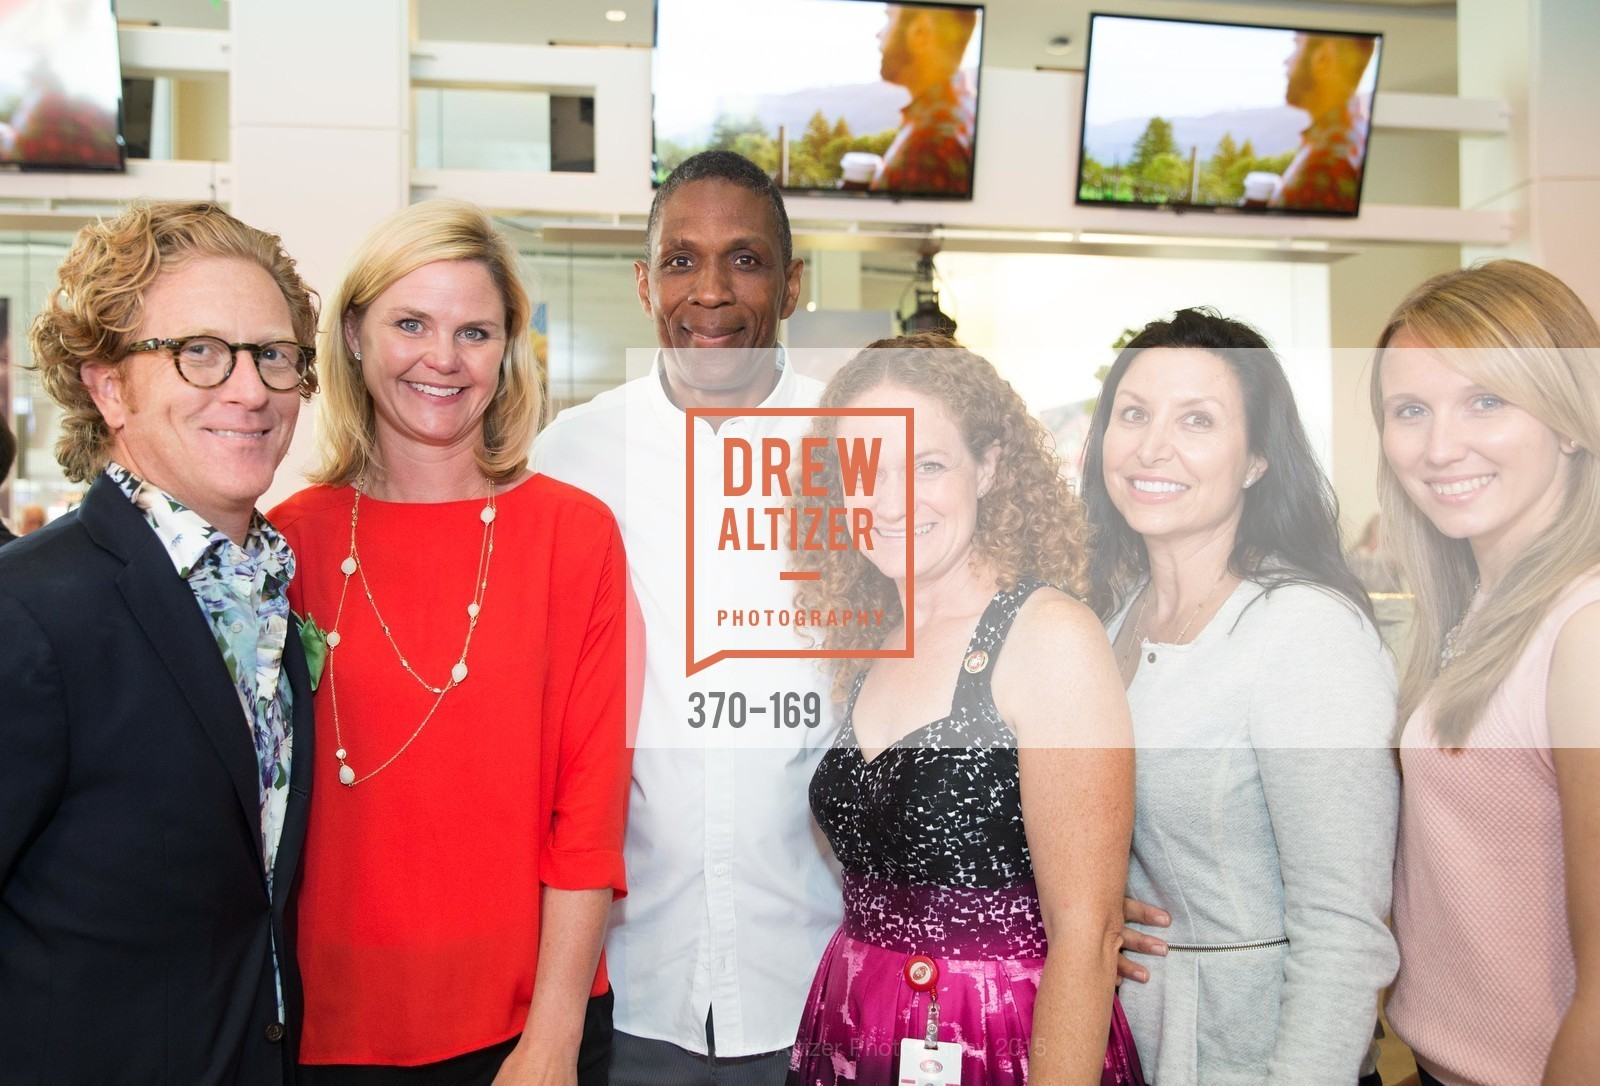 Clay Reynolds, Kari Karwoski, Keena Turner, Joanne Pasternack, Amy Bonnichsen, Linda Turner, Silicon Valley Wine Auction Benefiting Silicon Valley Education Foundation, Levi's Stadium. 4900 Marie P. DeBartolo Way, June 19th, 2015,Drew Altizer, Drew Altizer Photography, full-service agency, private events, San Francisco photographer, photographer california